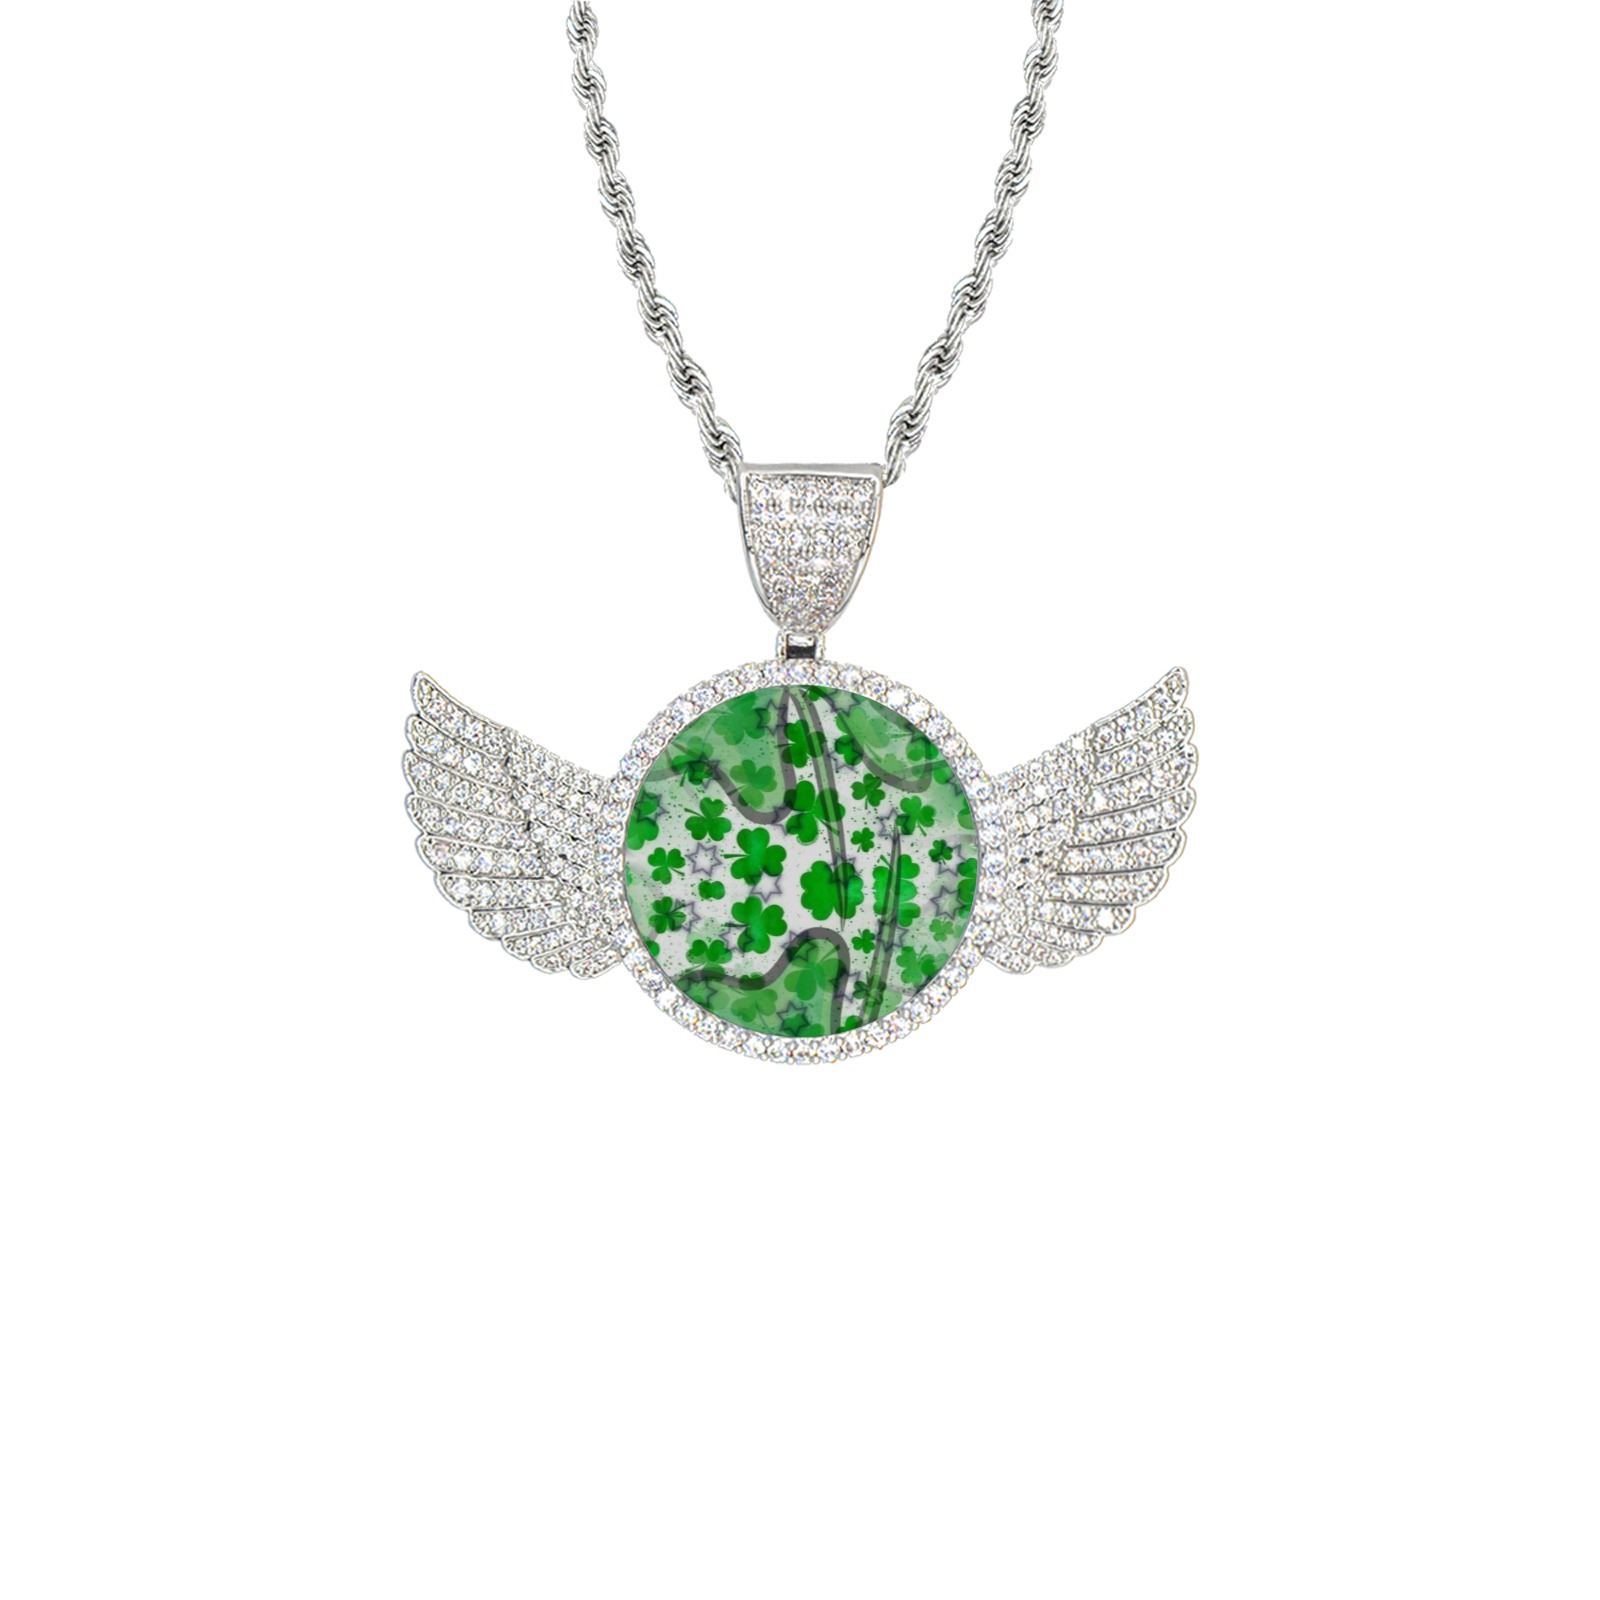 St. Patrick's by Artdream Wings Silver Photo Pendant with Rope Chain